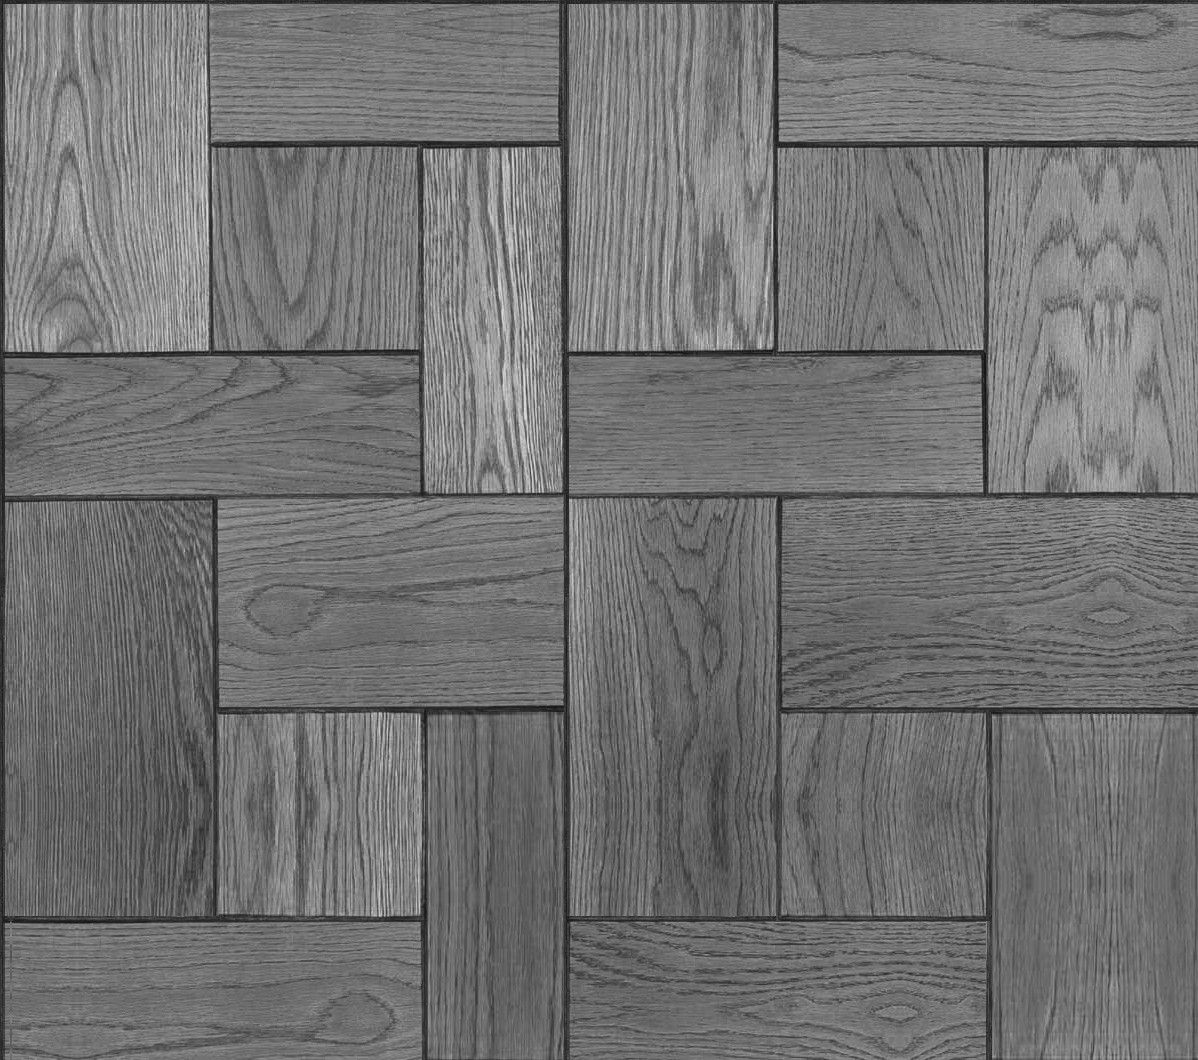 Black floor wood texture 1198x1060 px material texture pattern pinterest wood floor Wood pattern tile